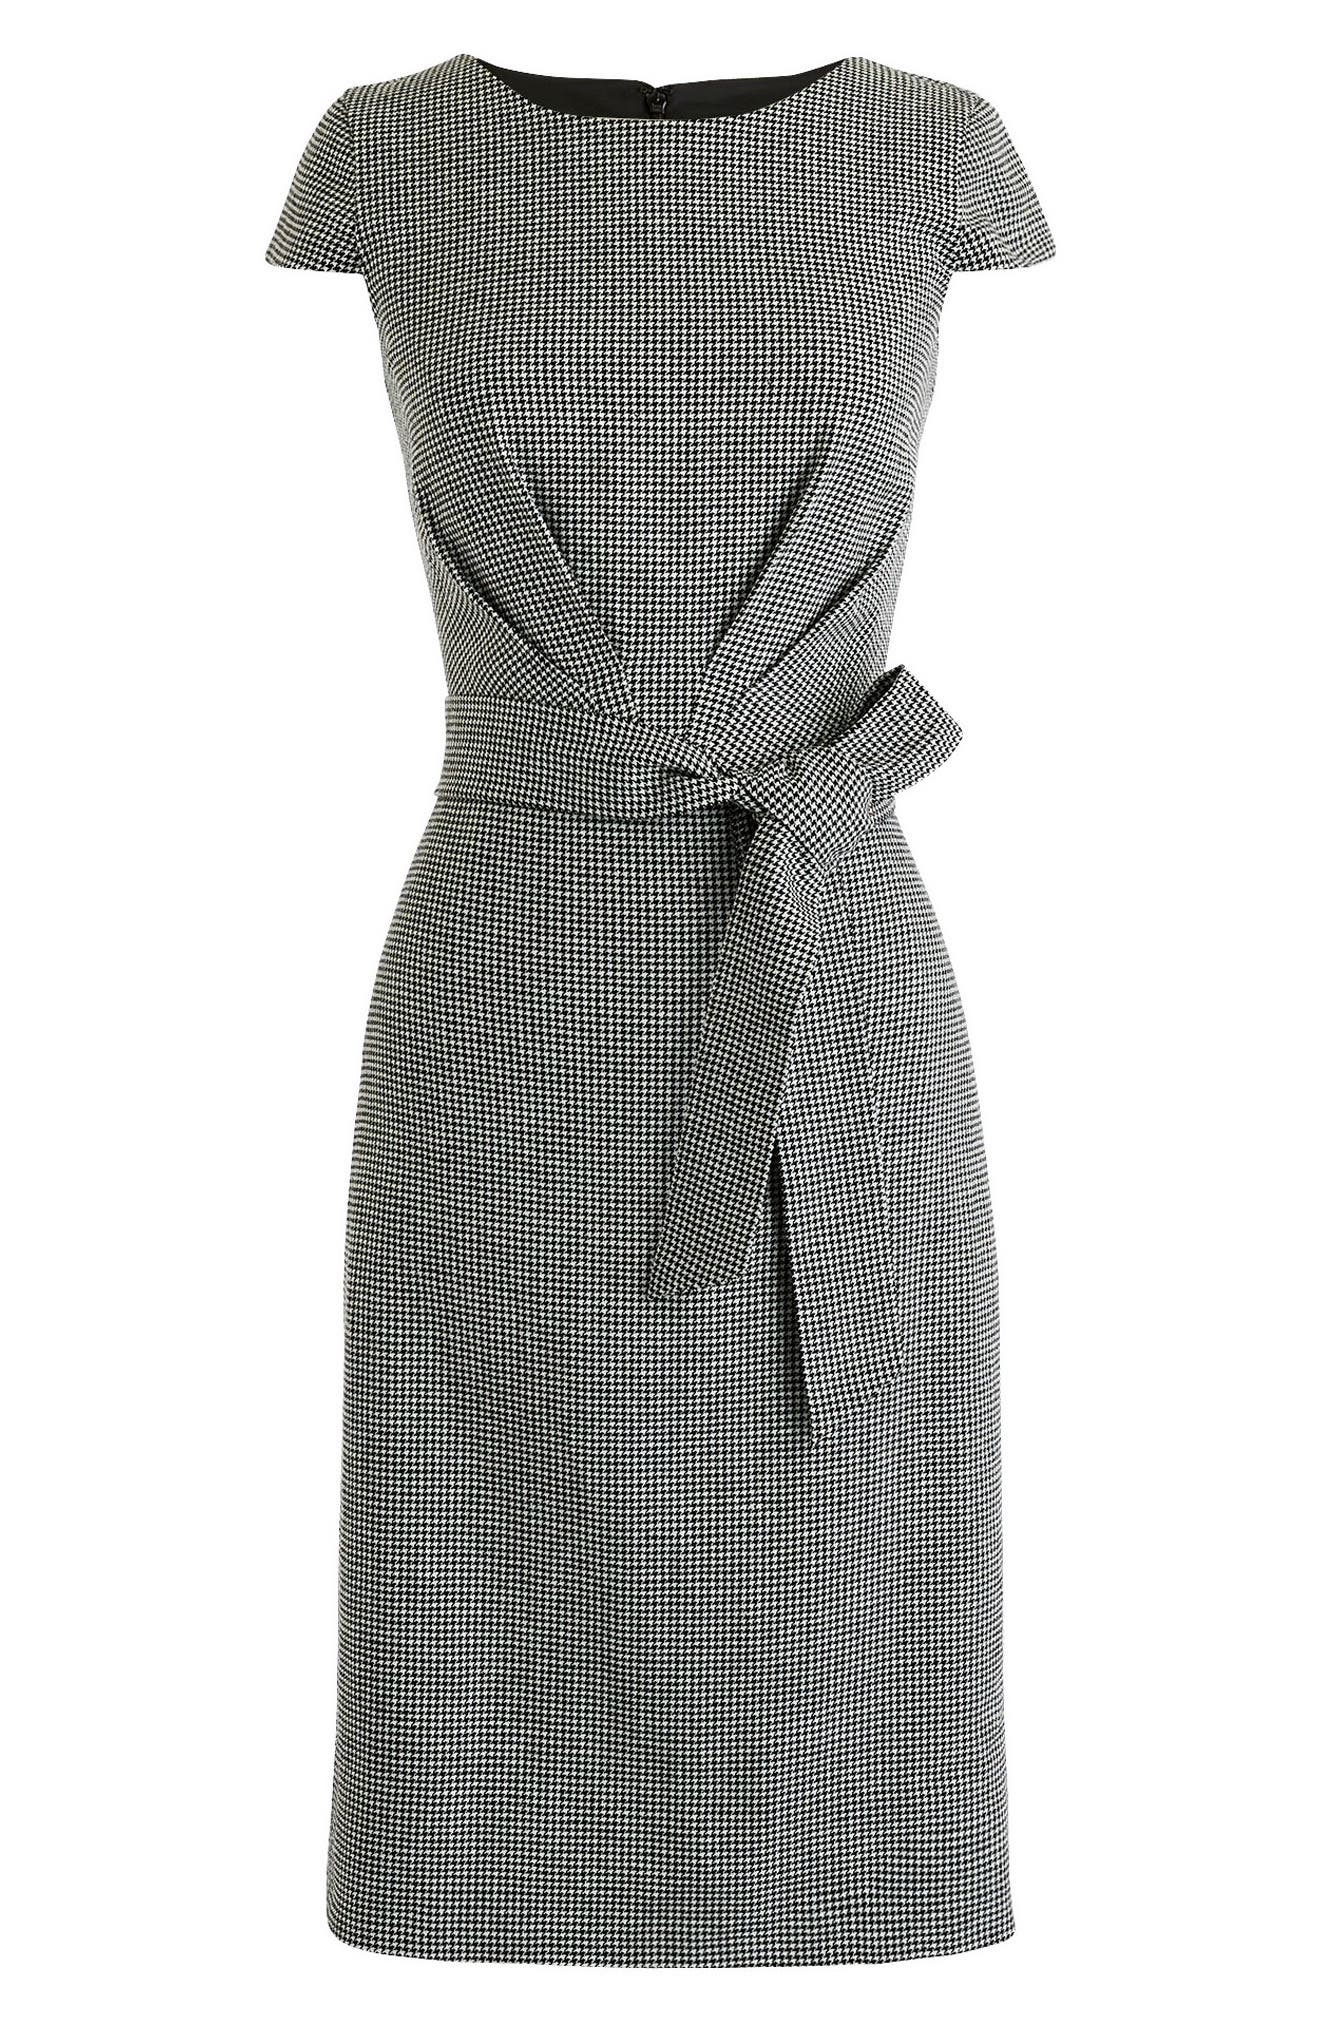 Tie Front Micro Houndstooth Dress,                             Alternate thumbnail 4, color,                             010